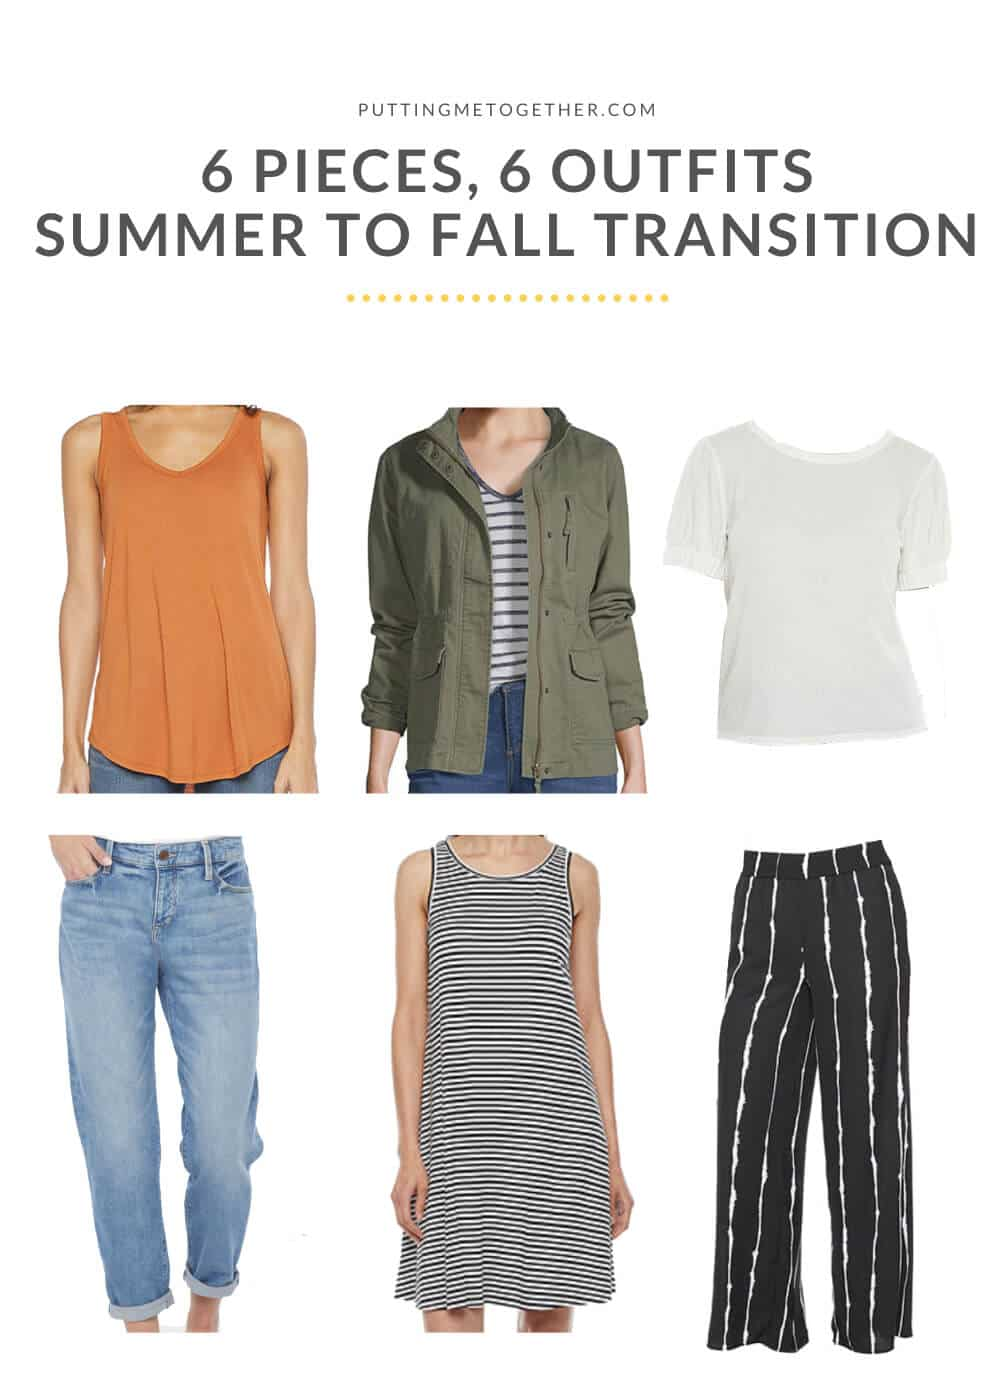 6 Pieces, 6 Outfits Summer to Fall Capsule Wardrobe - The Pieces